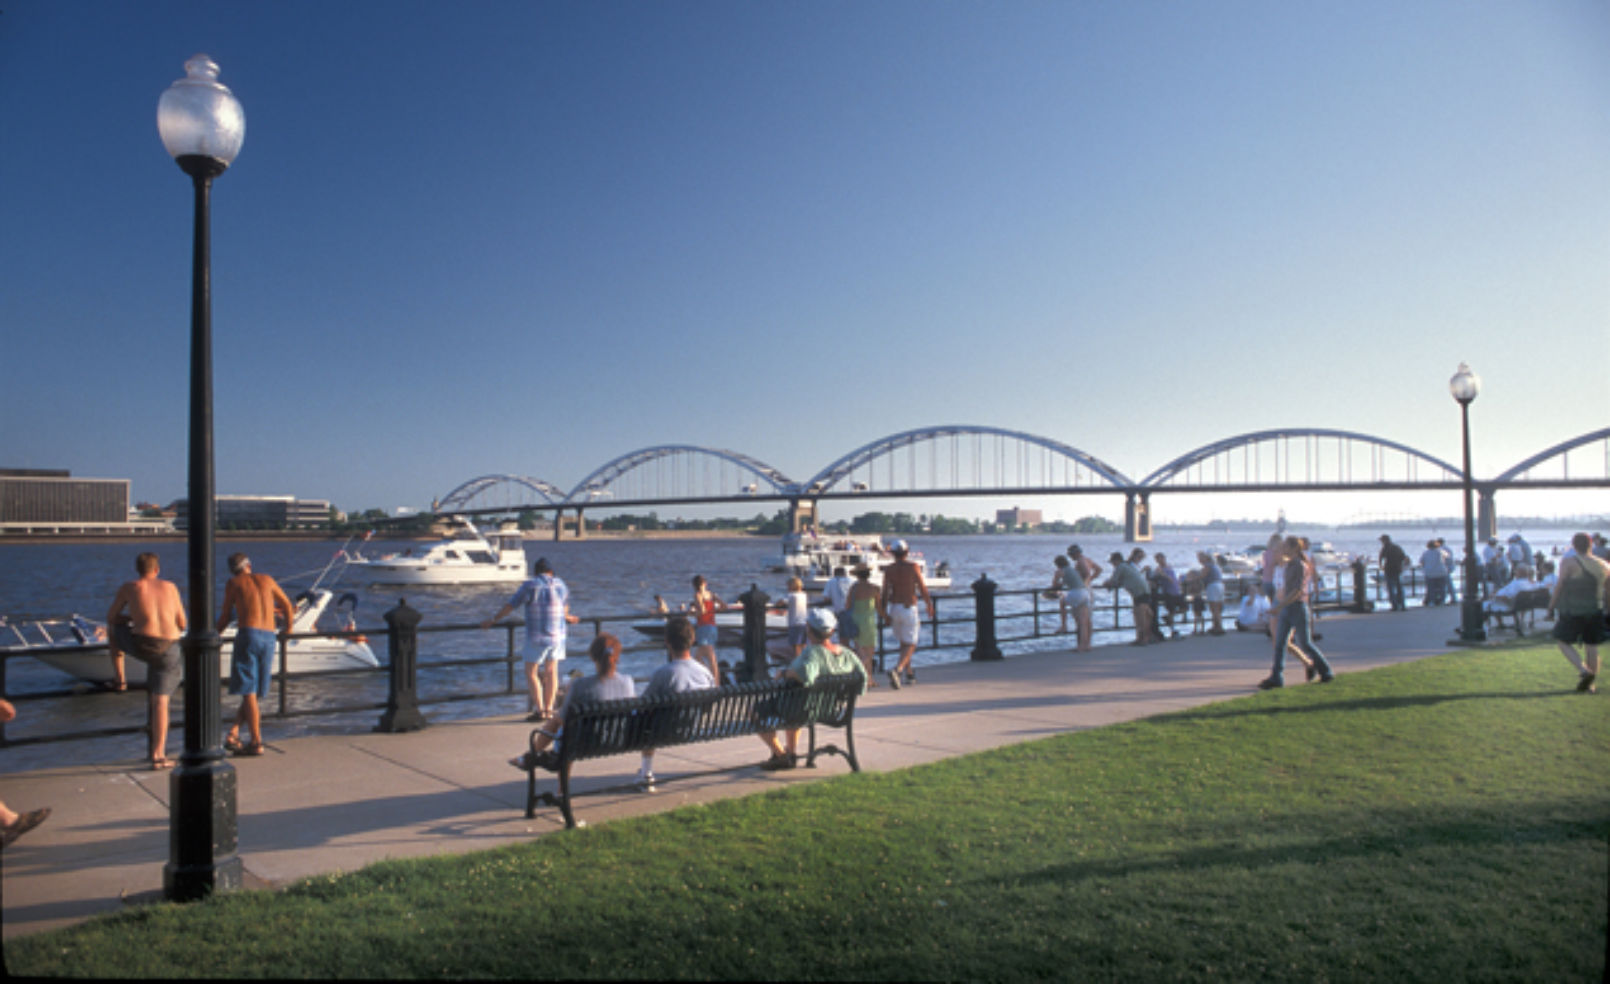 Davenport riverwalk